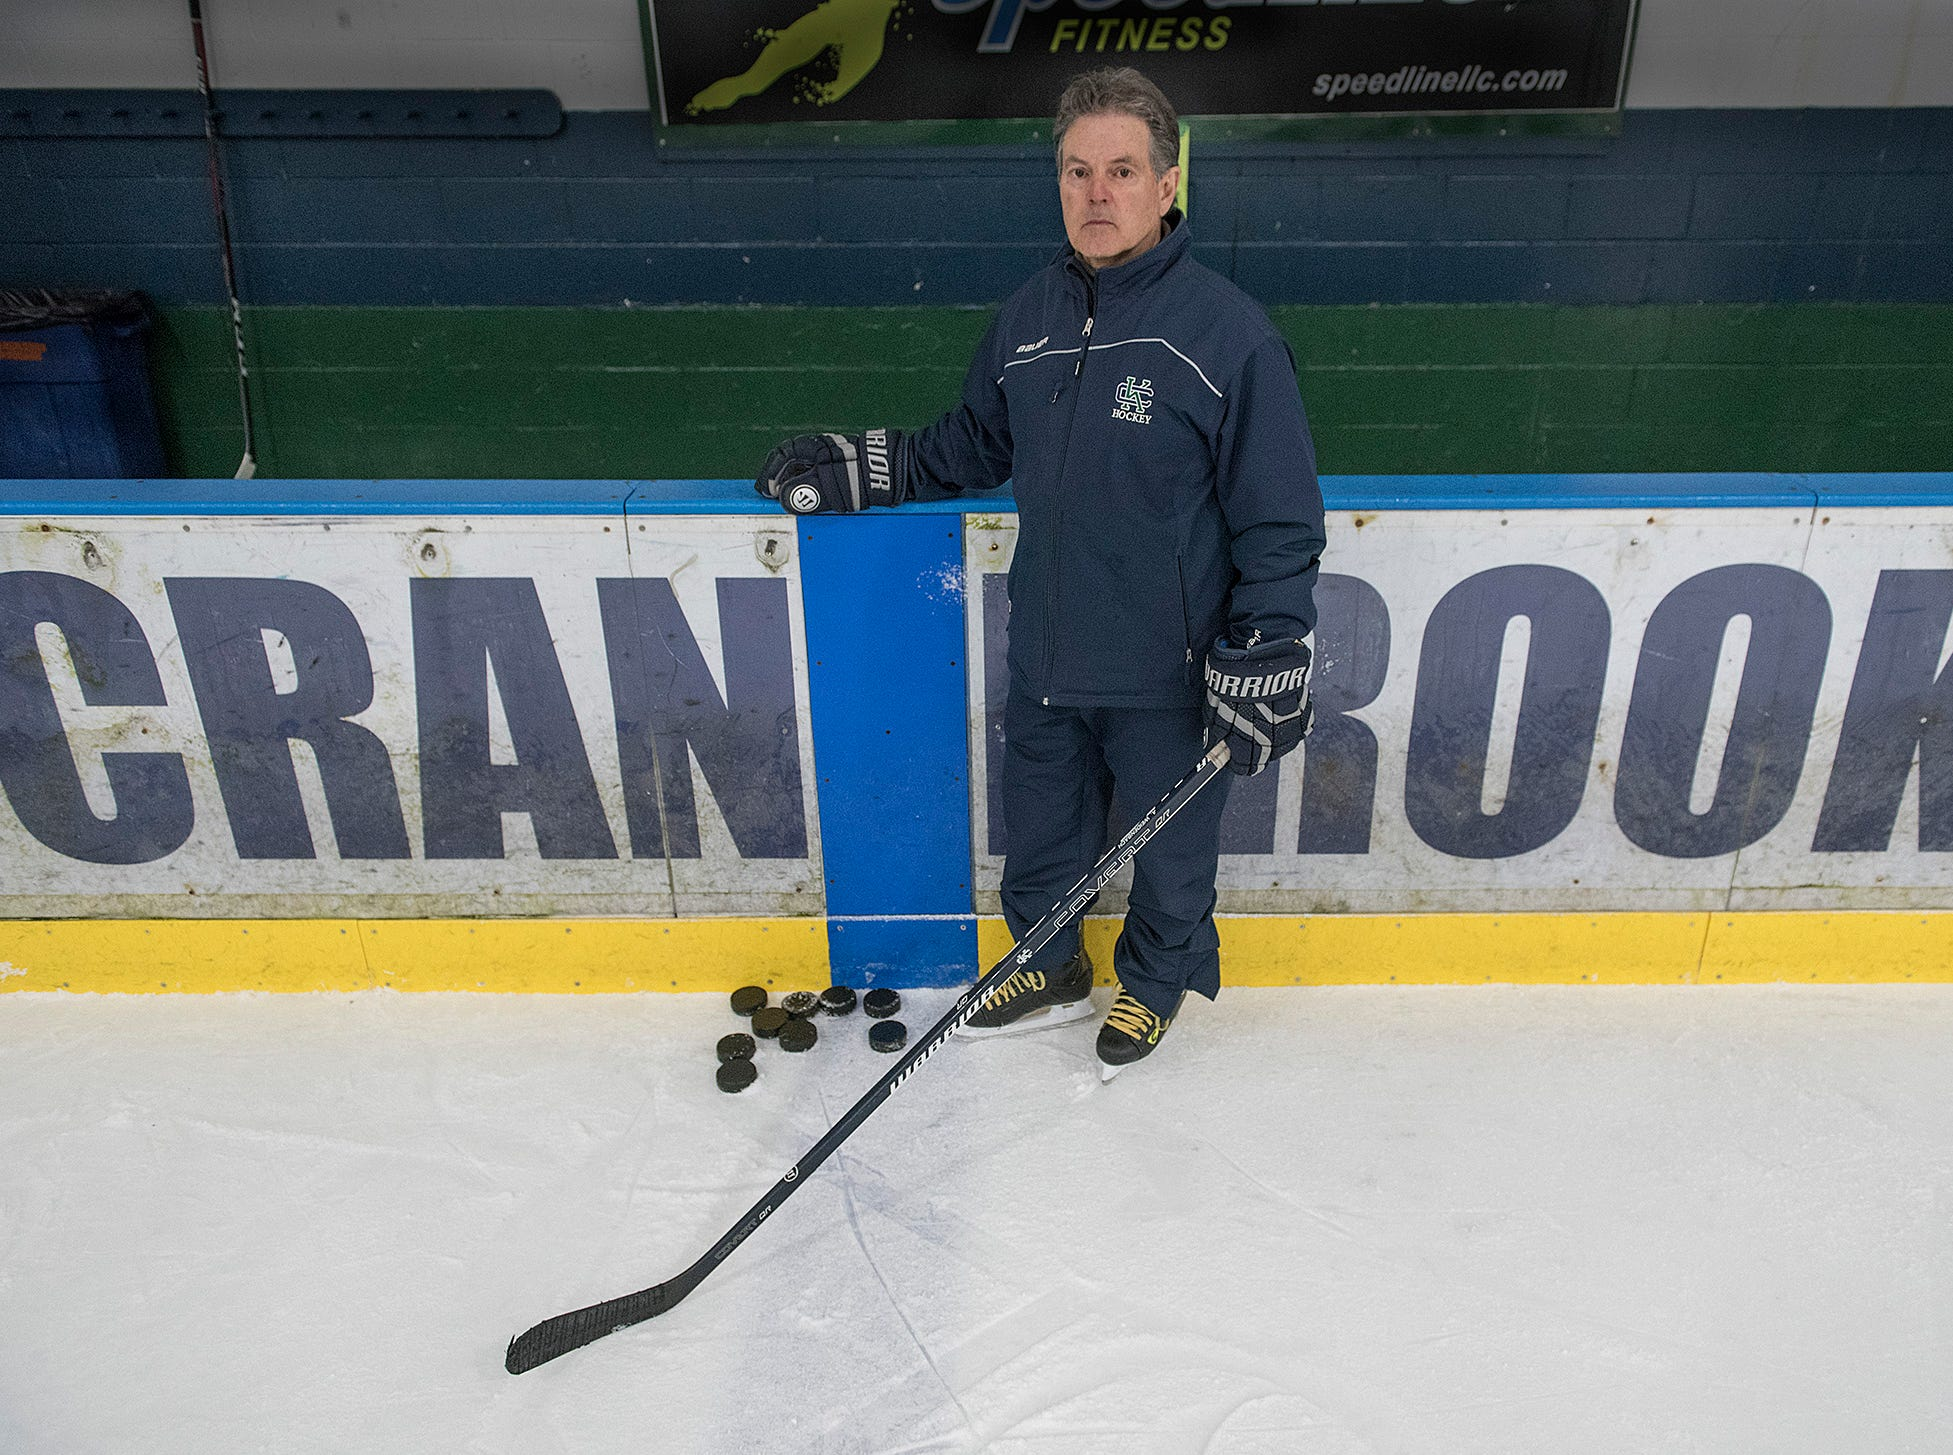 Cranbrook Hockey Coach Andy Weidenbach will retire after 26 seasons with the Cranes.